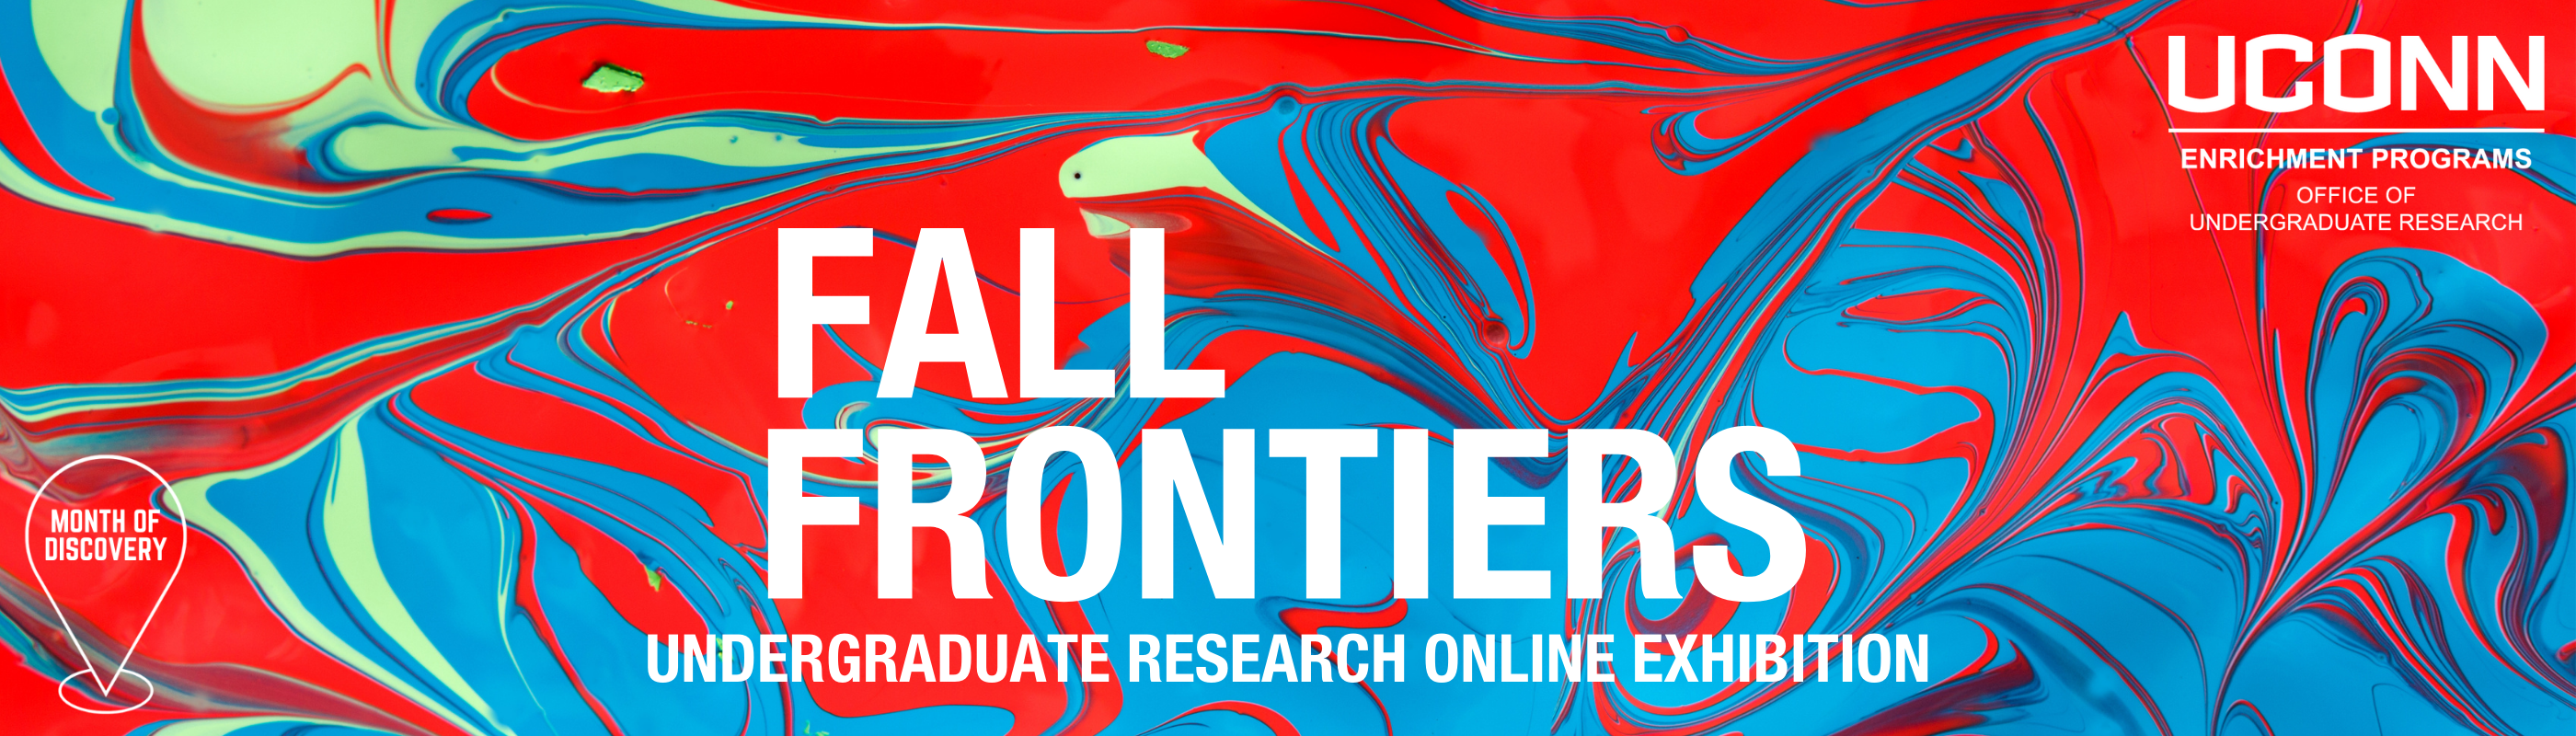 Fall Frontiers Undergraduate Research Online Exhibition